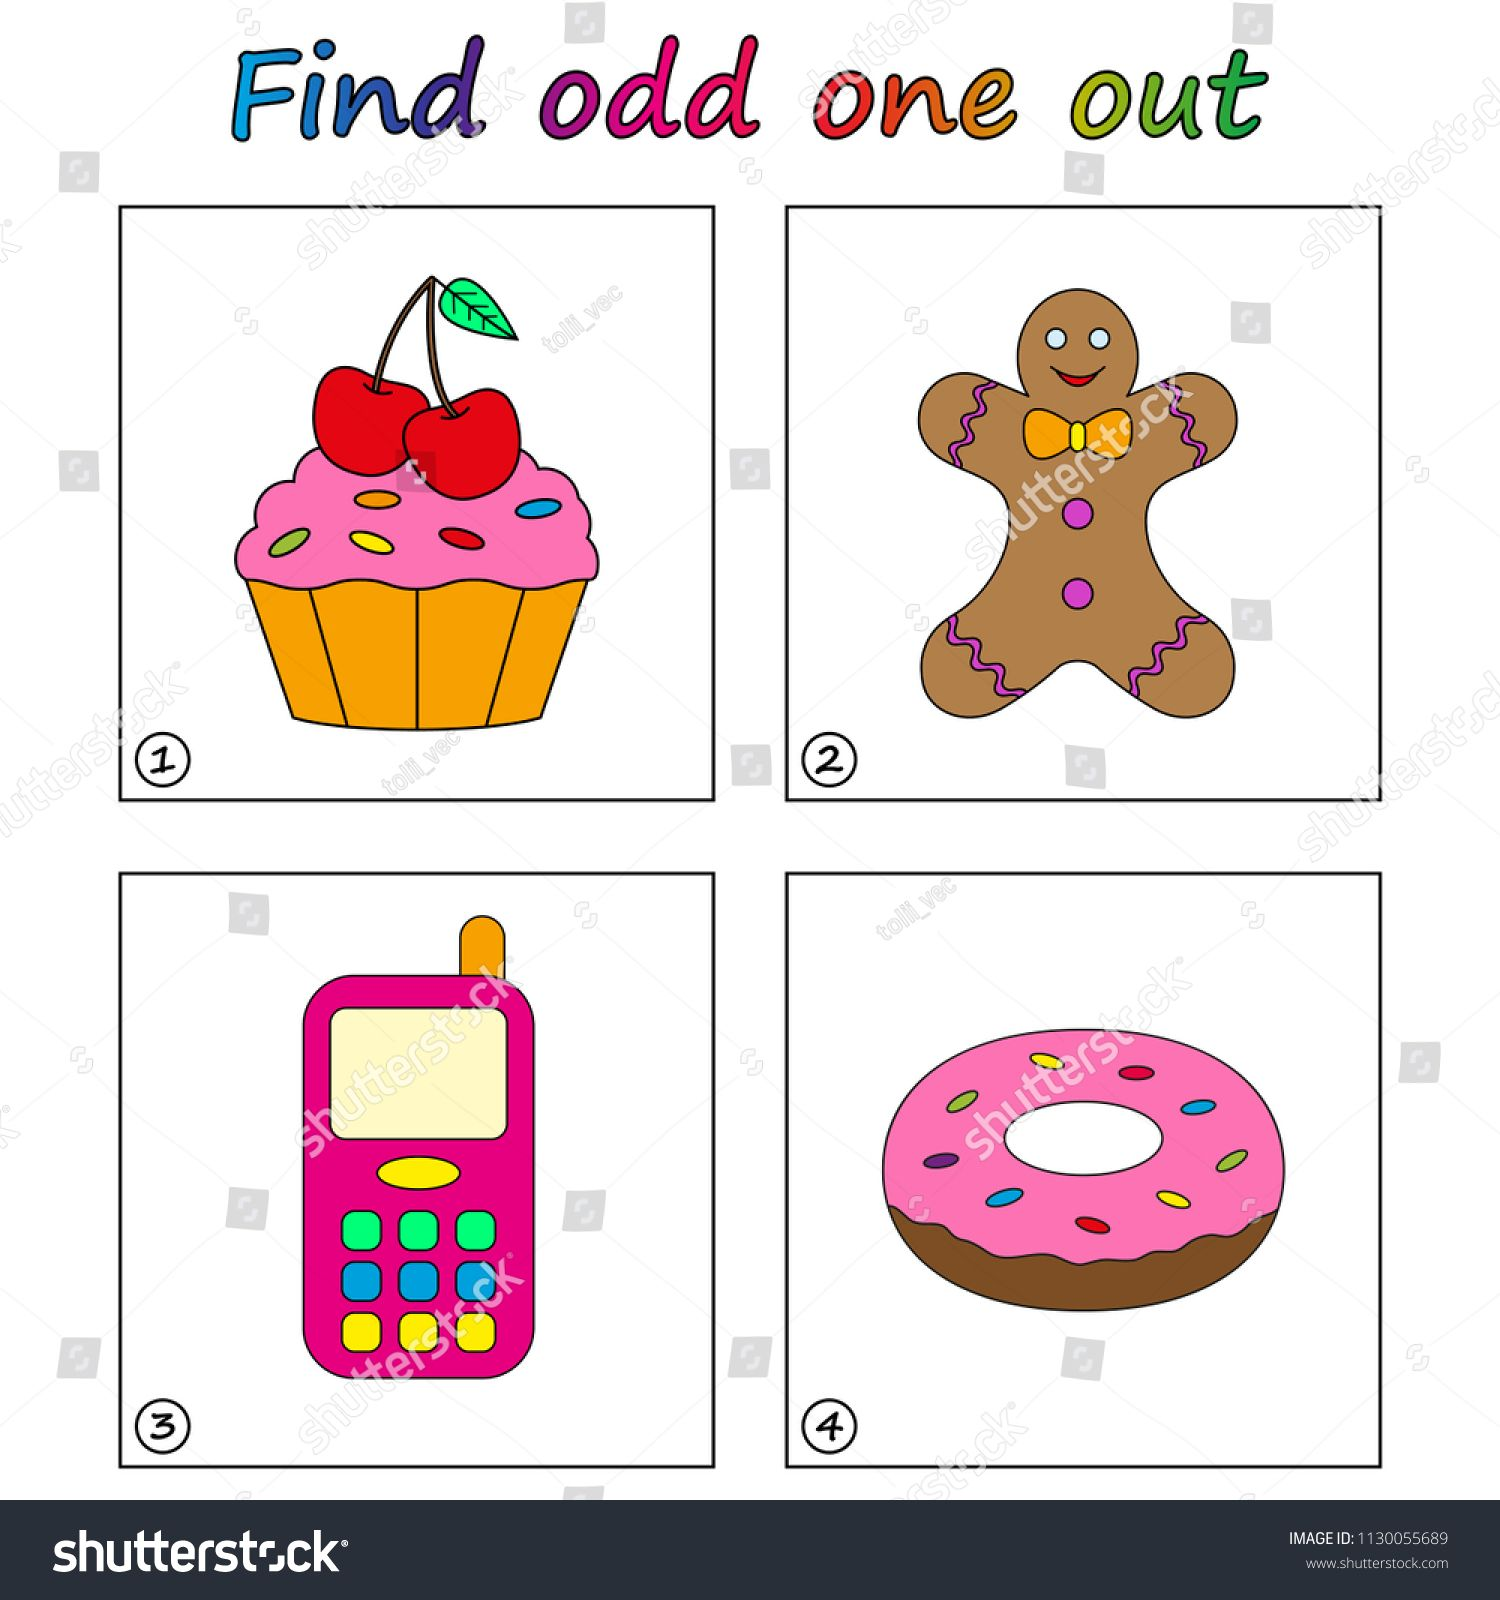 Find Odd One Out Game For Kids Worksheet Visual Educational Game For Children Sponsored Game Kids Fi Games For Kids Educational Games For Kids Kids Stock [ 1600 x 1500 Pixel ]